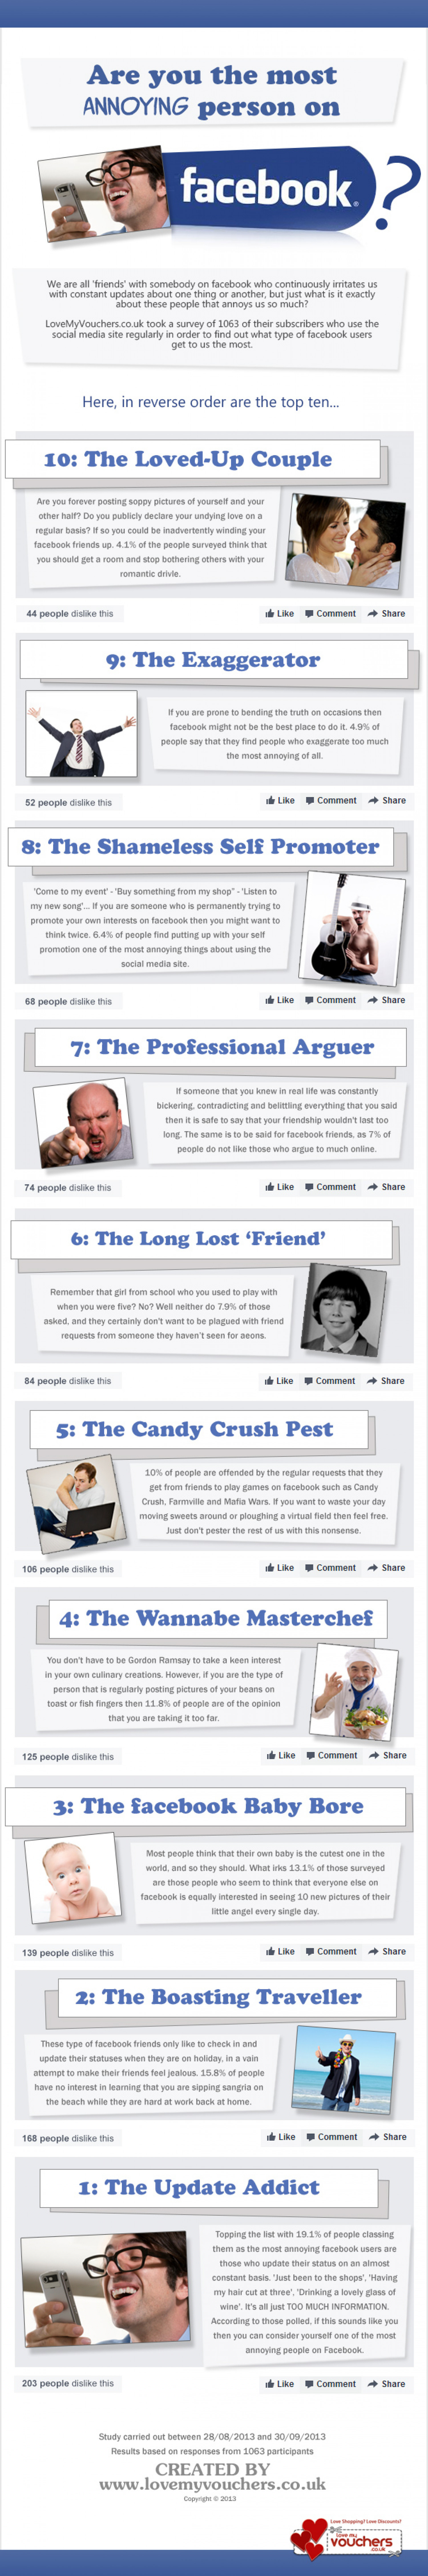 Are You The Most Annoying Person On Facebook? Infographic